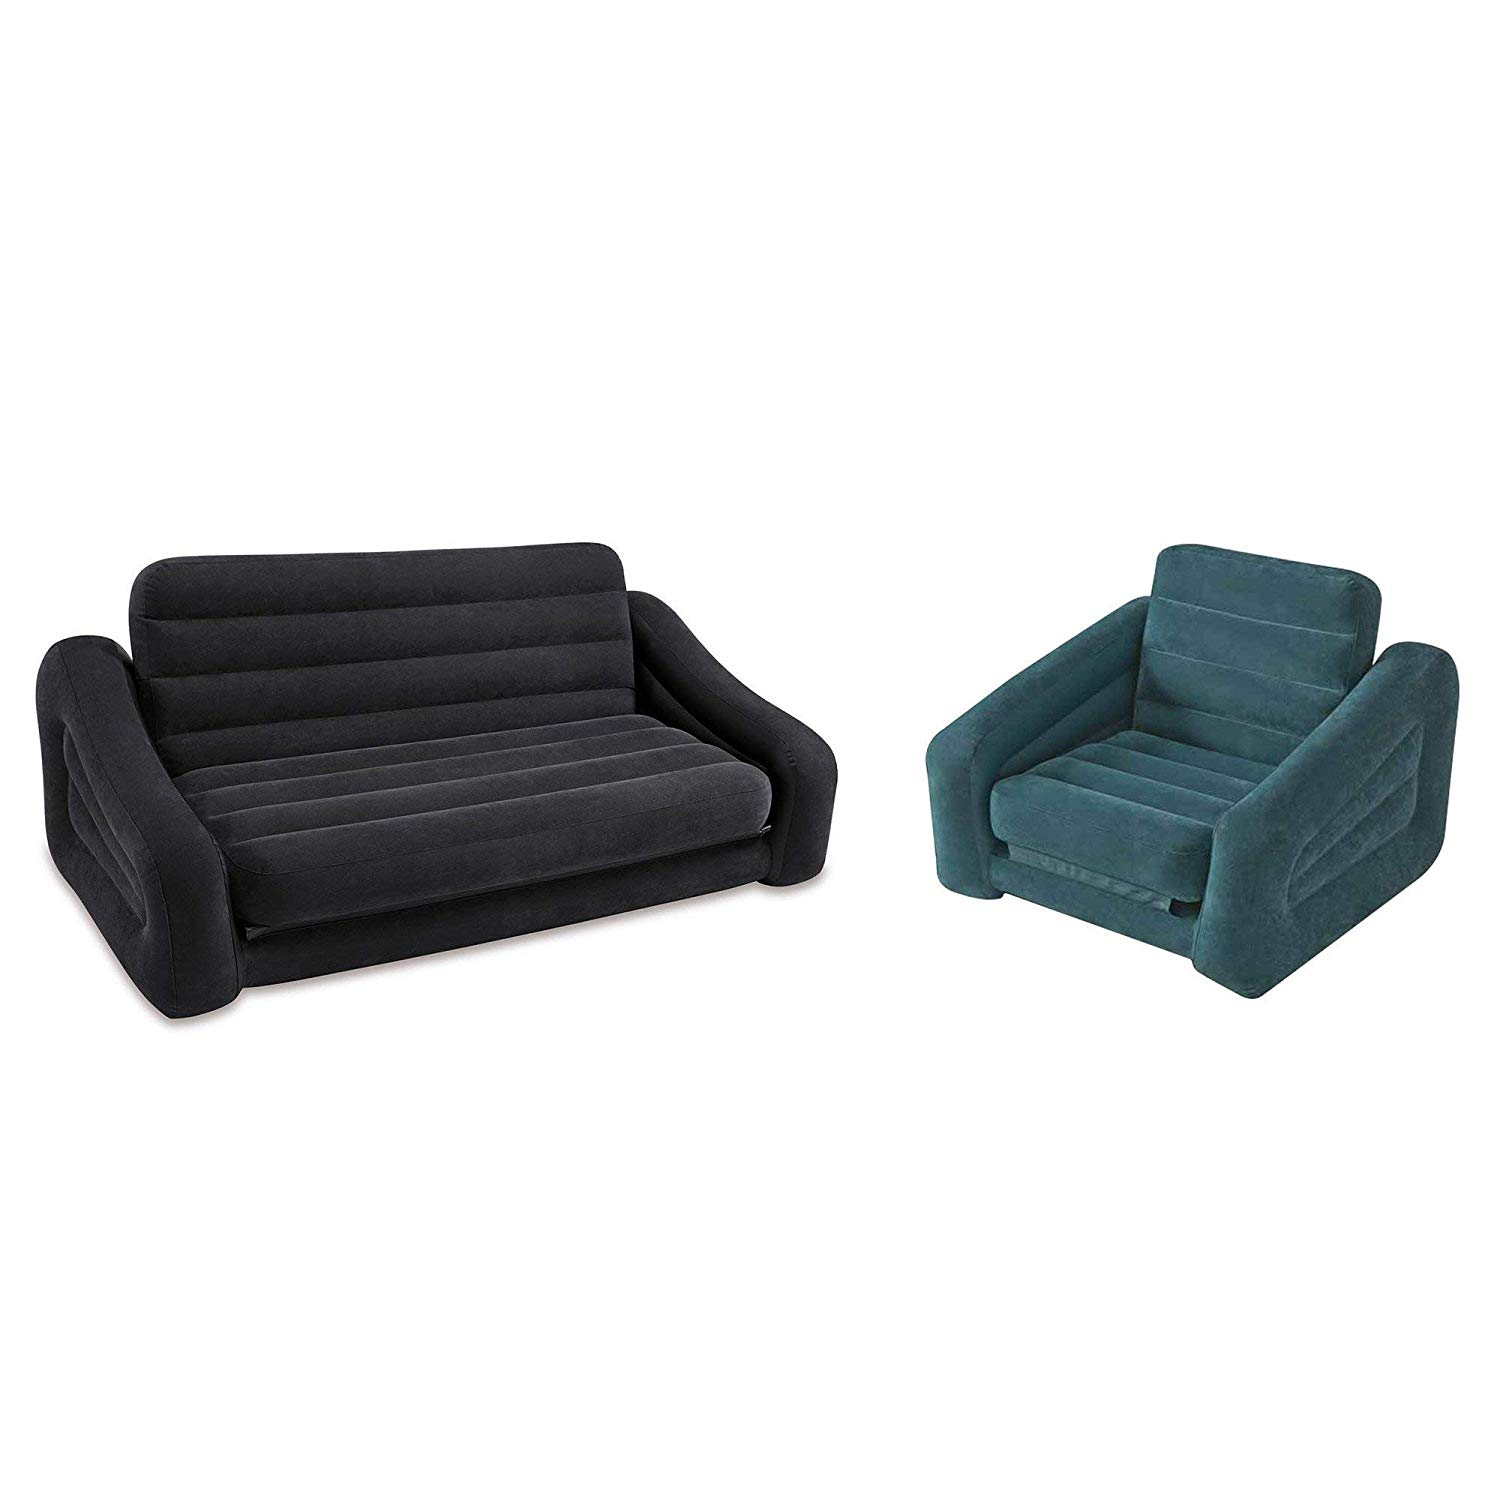 Prime Cheap Spiderman Inflatable Sofa Chair Find Spiderman Evergreenethics Interior Chair Design Evergreenethicsorg